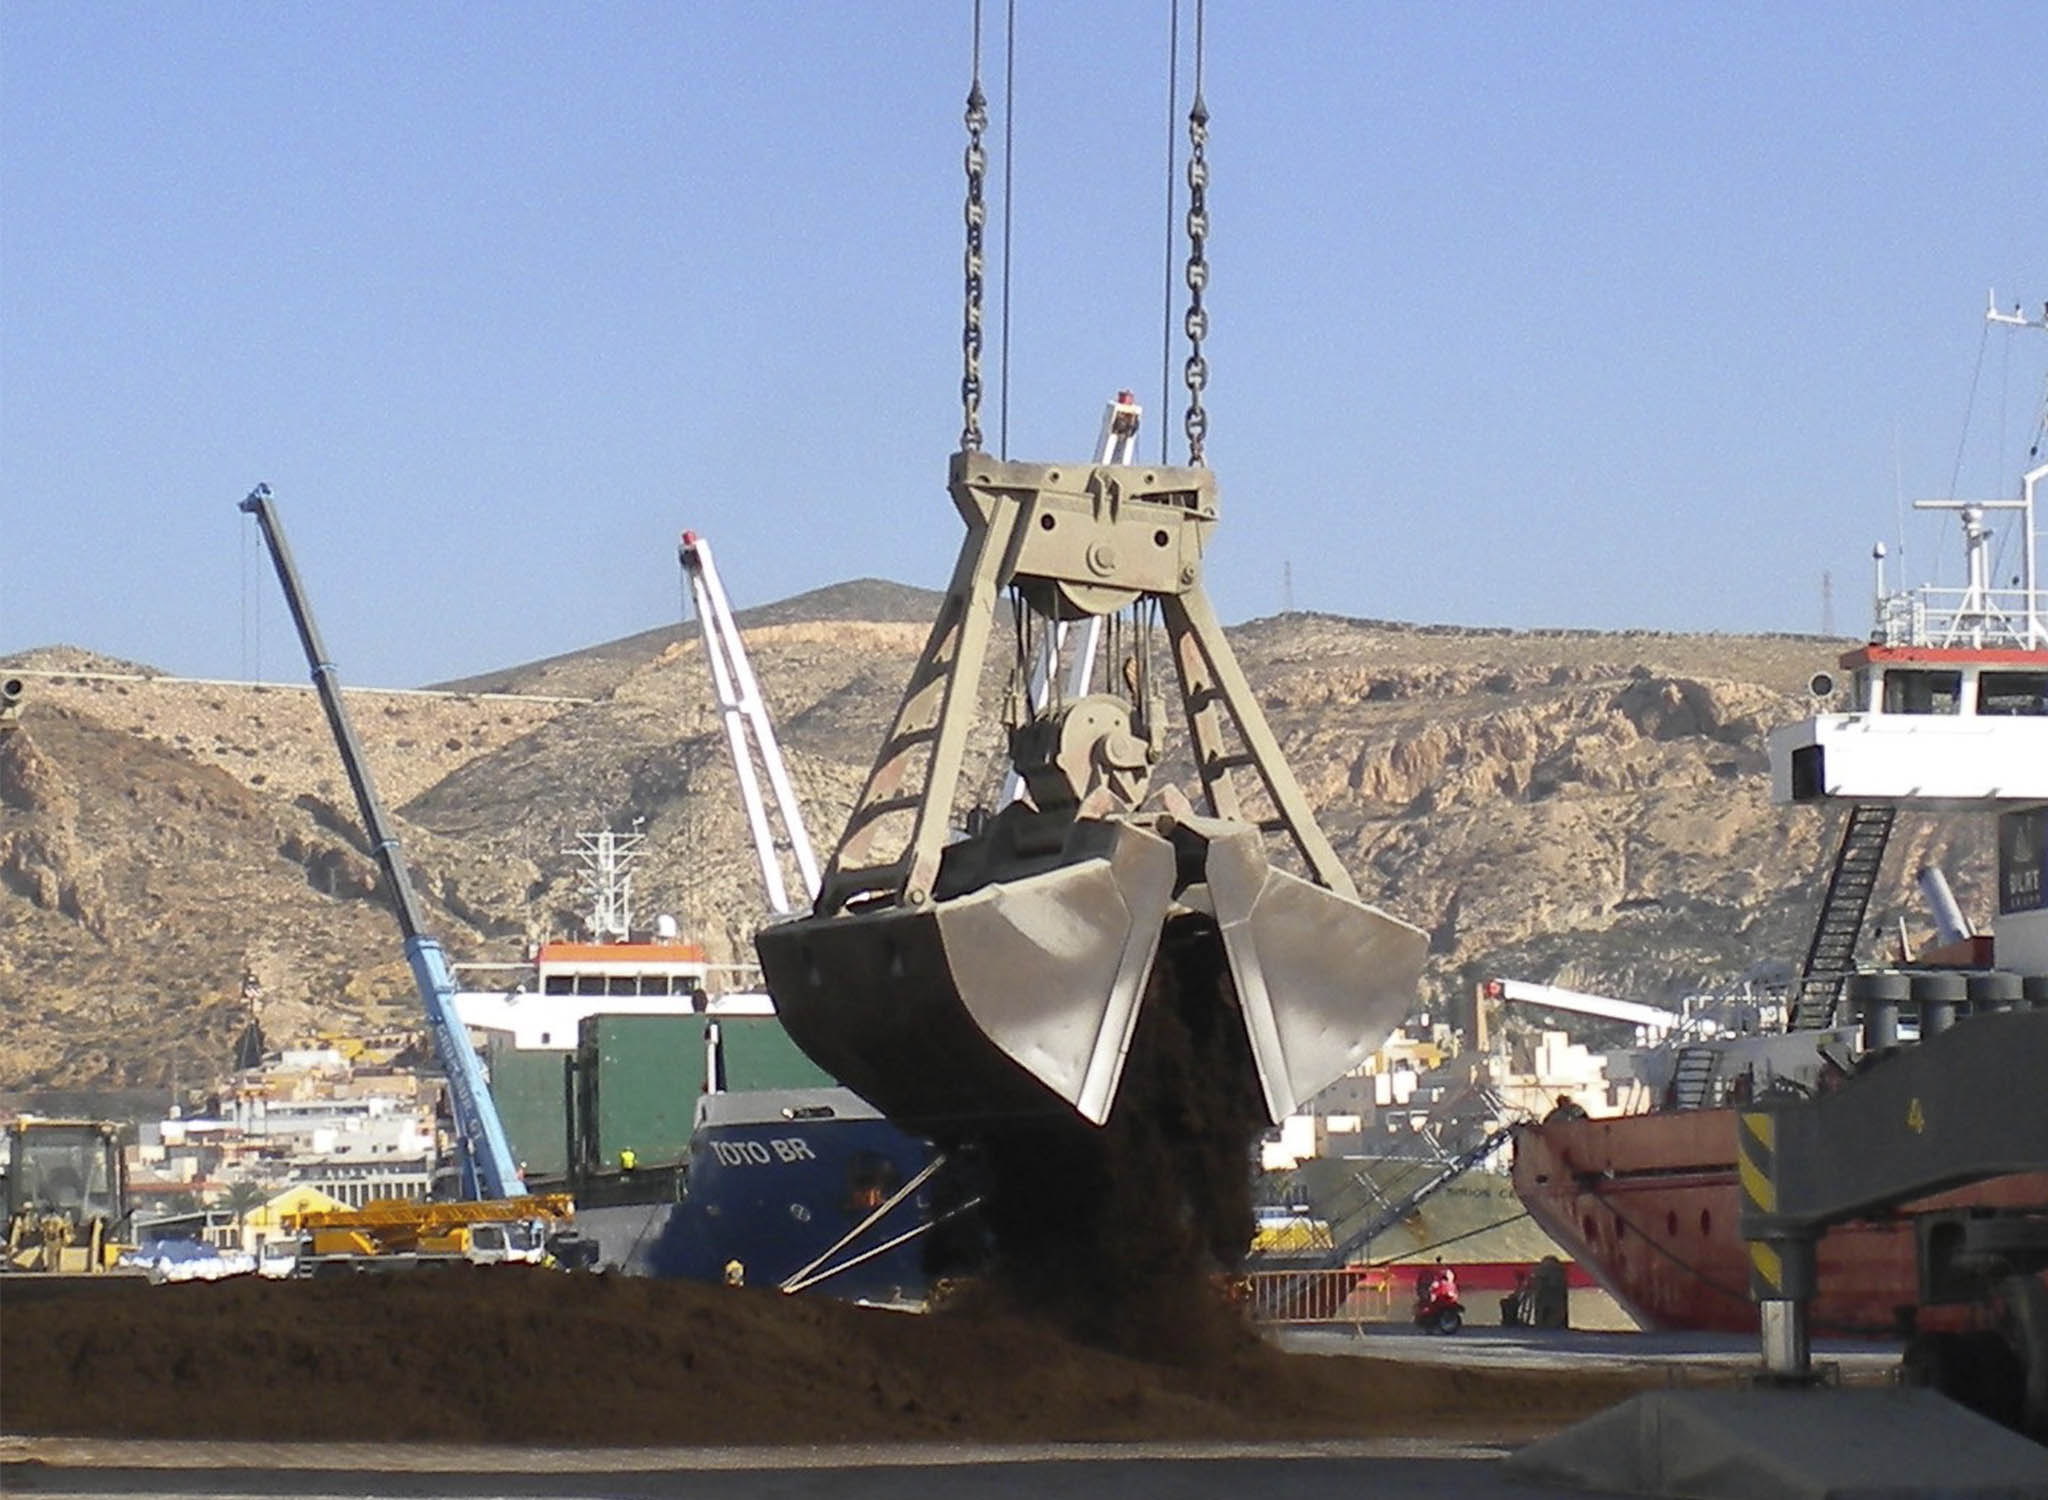 RAW MATERIAL ARRIVING